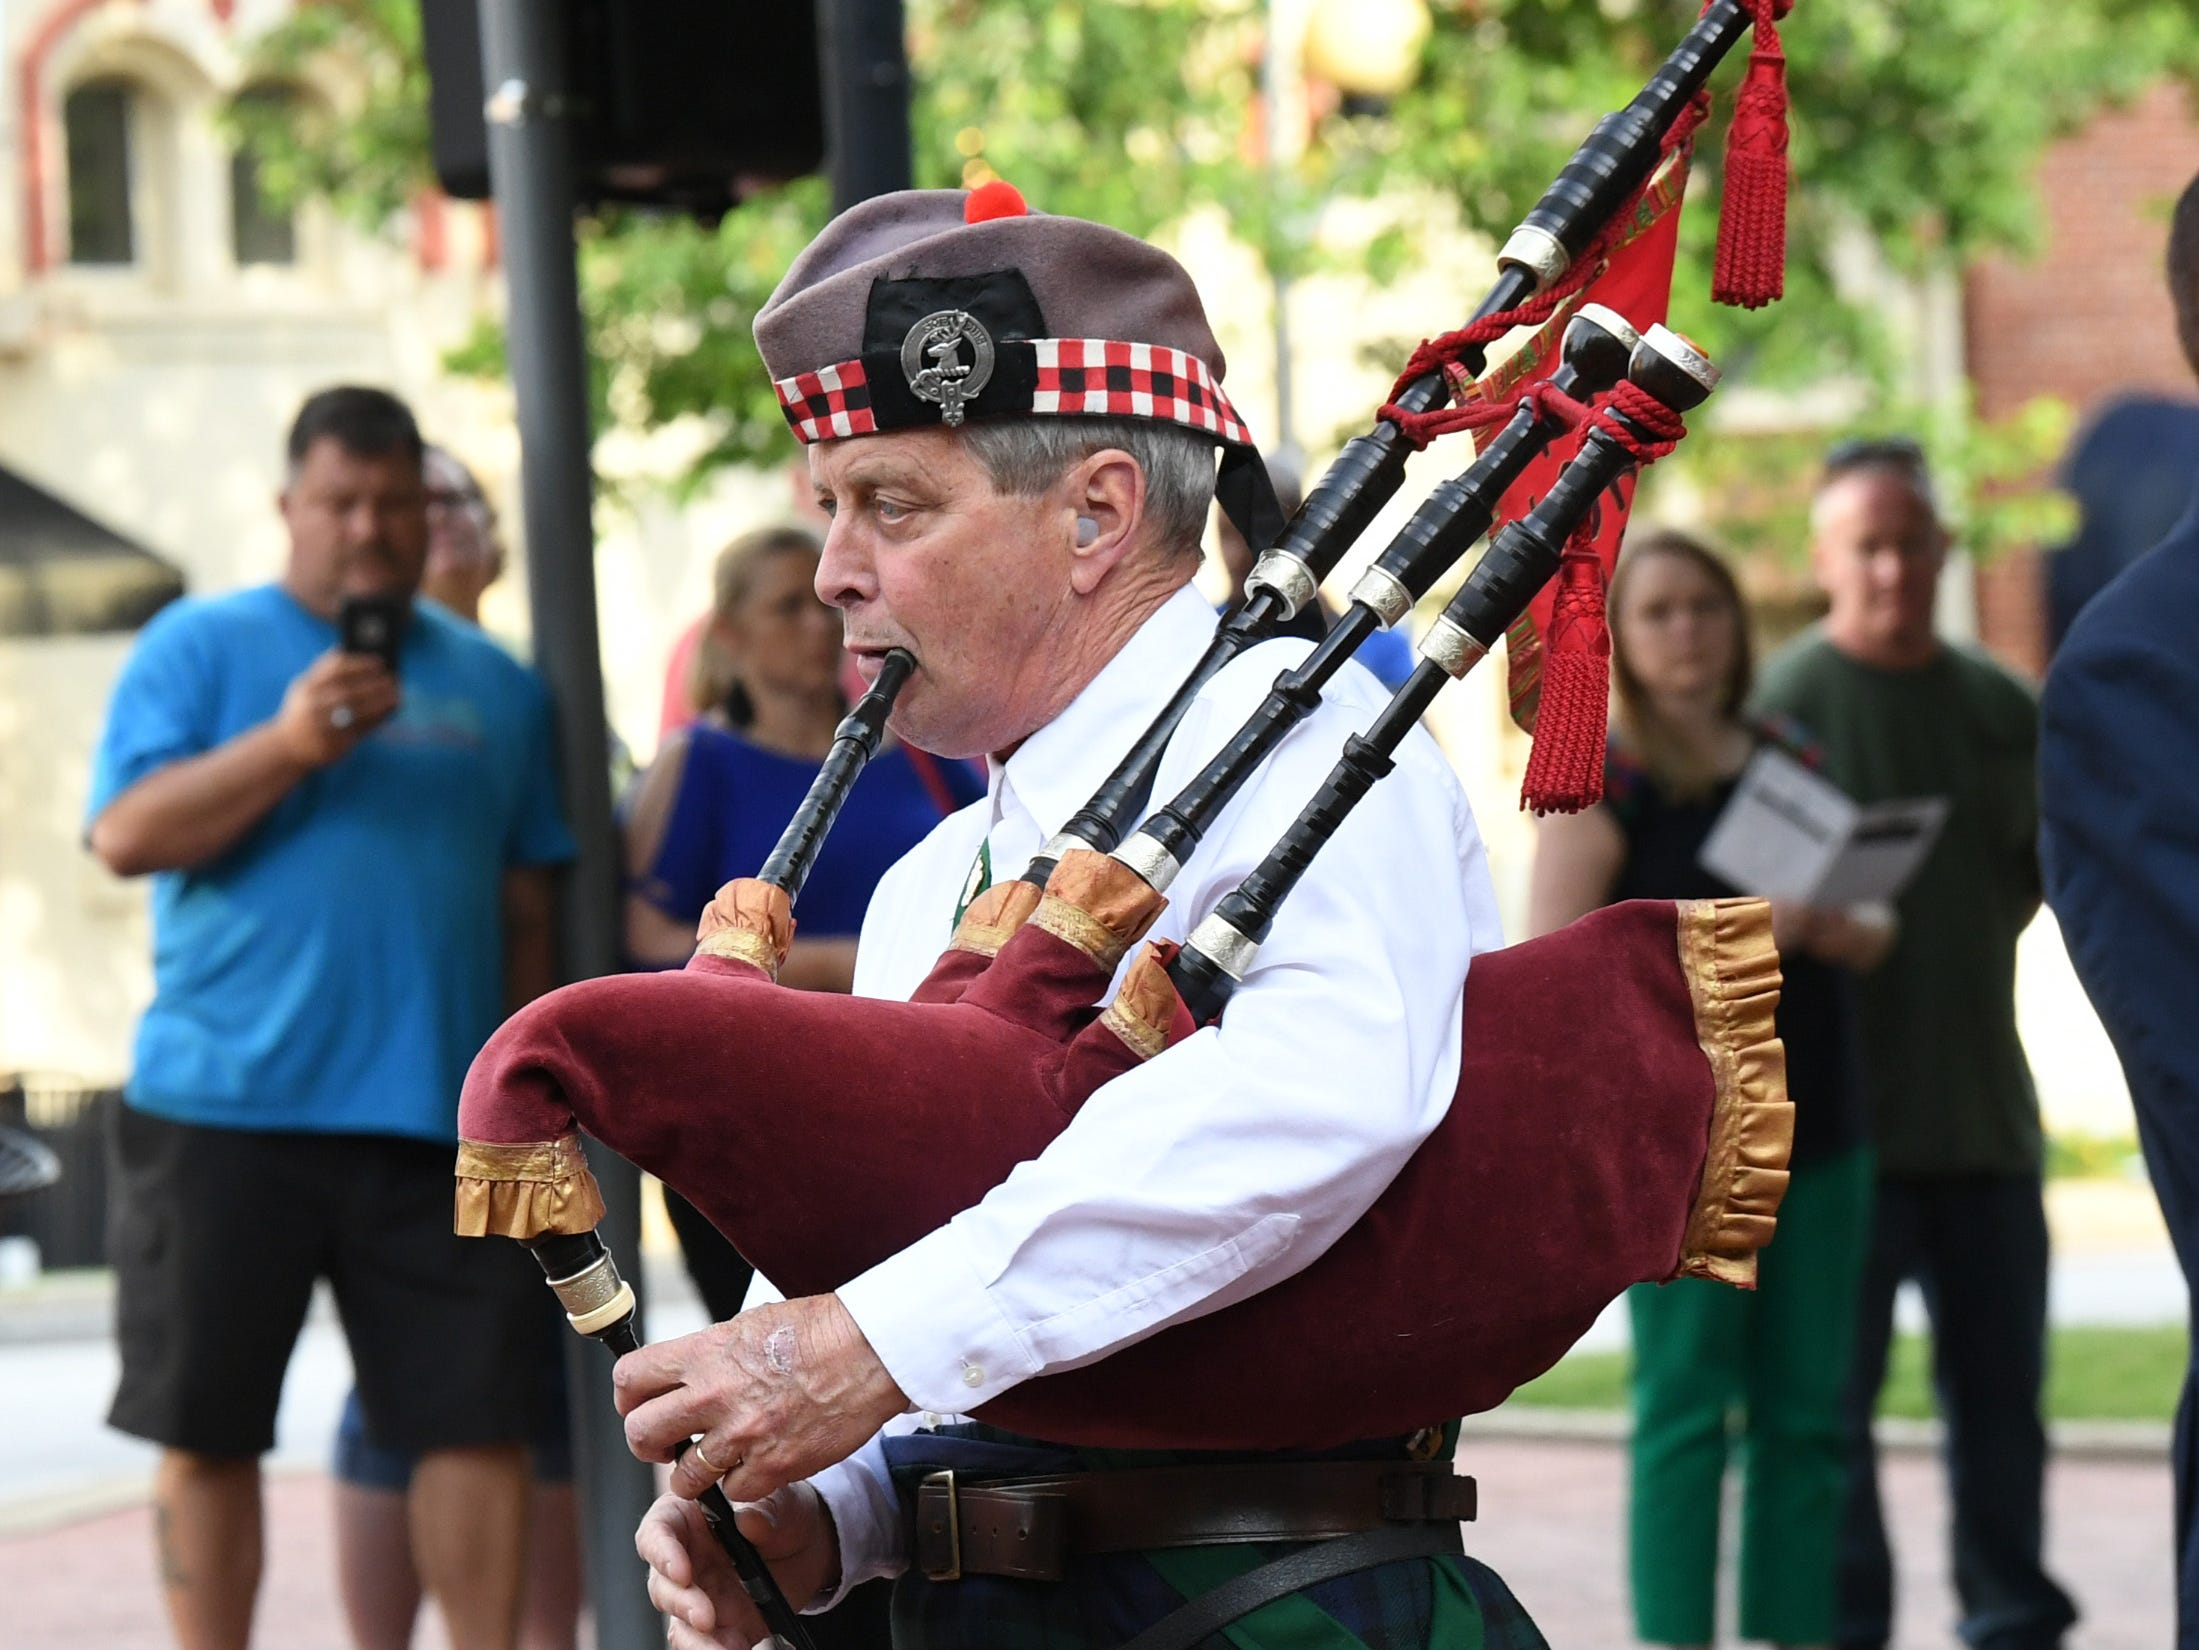 Preston Gravely plays Amazing Grace during the 2019 Peace Officer Memorial Service Wednesday May 15, 2019. People attended to help honor the lives of officers lost in the line of duty.